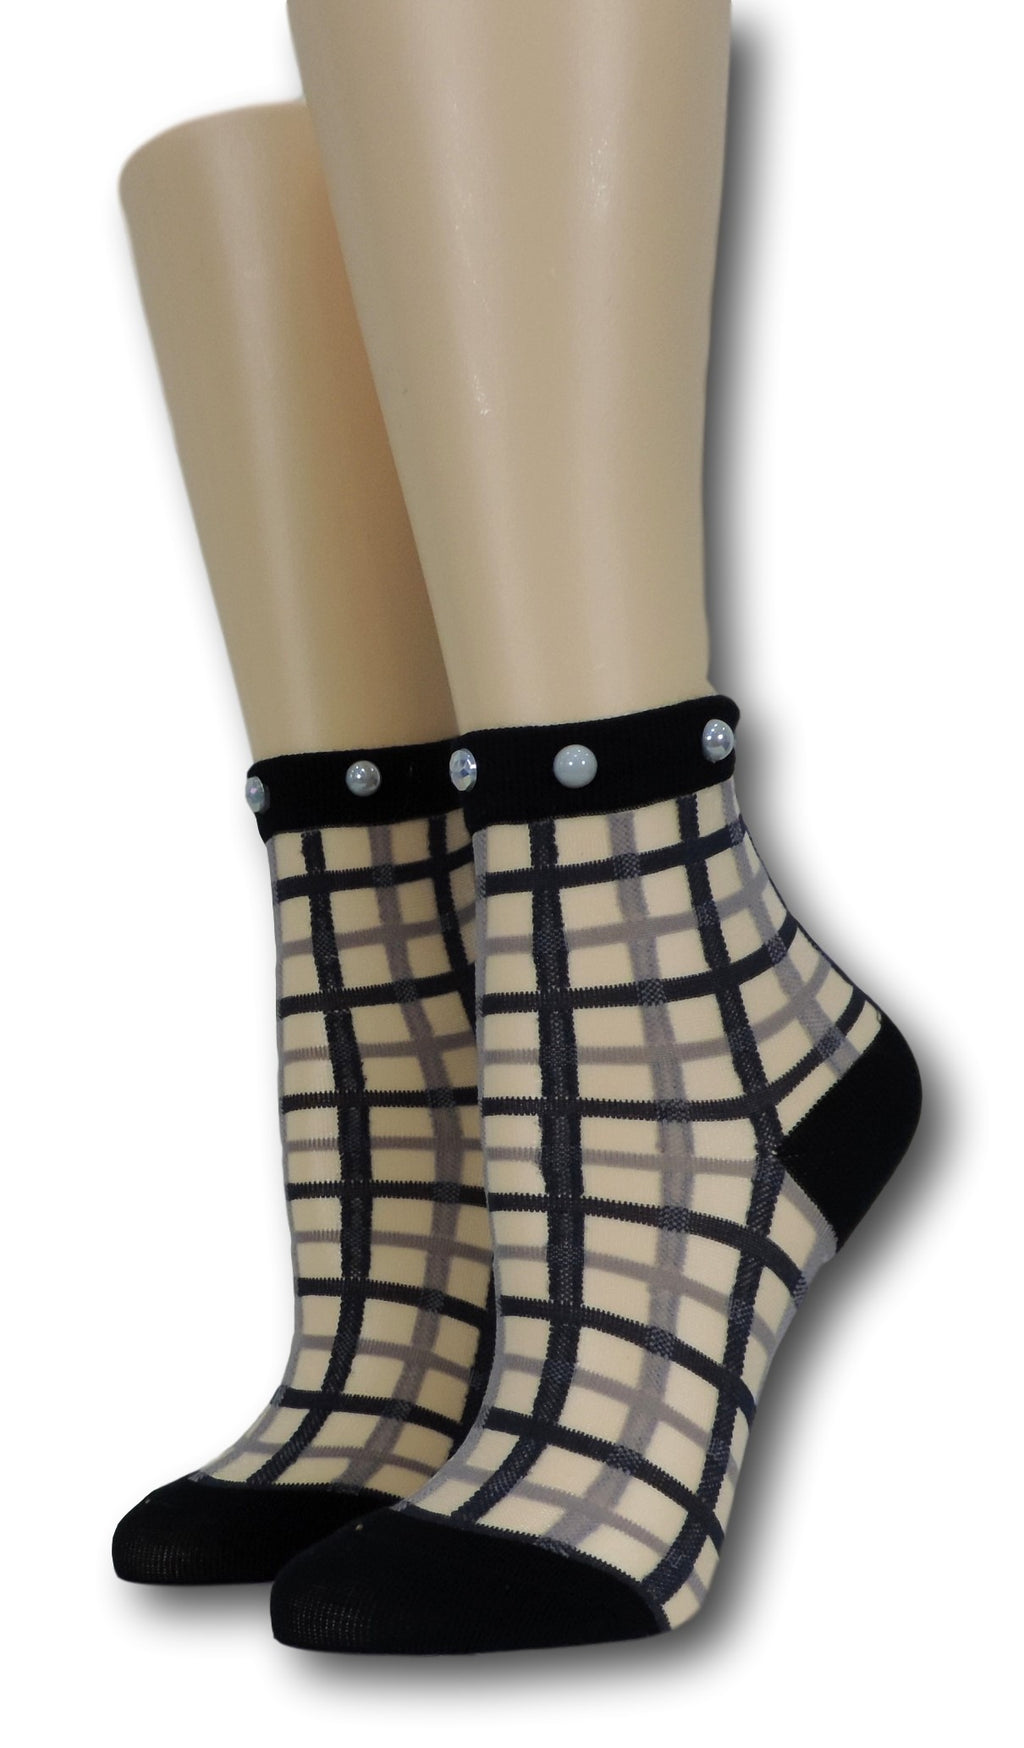 Black Vintage Sheer Socks with beads